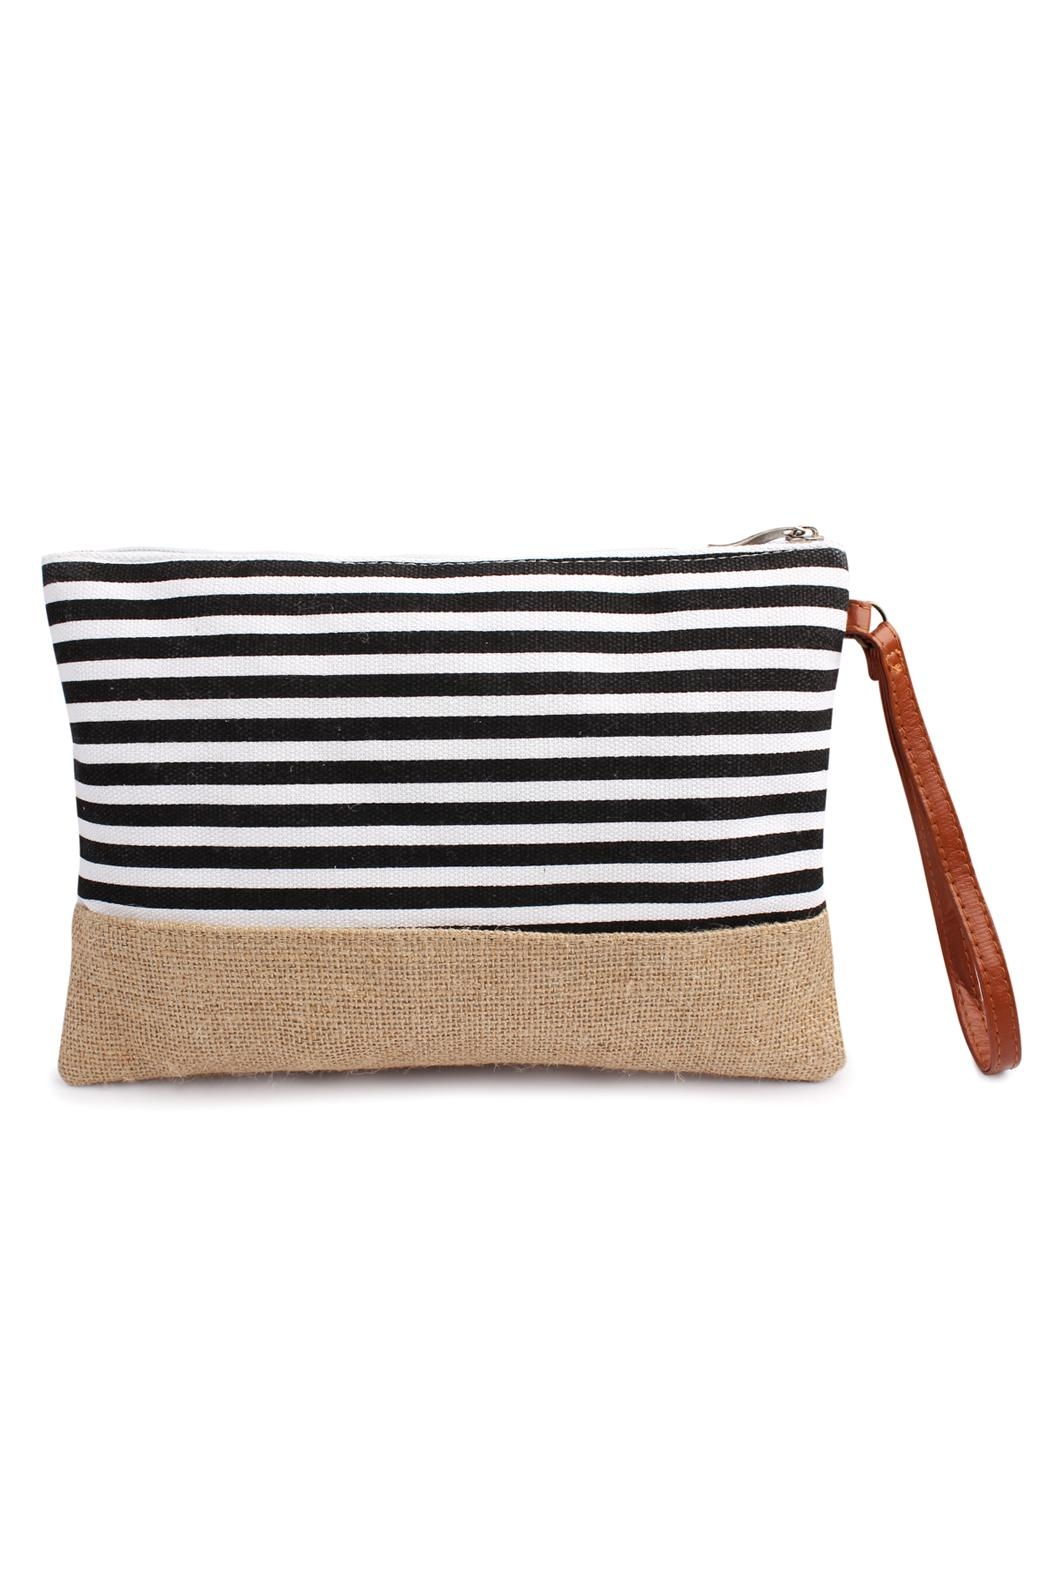 Riah Fashion Striped Wristlet Pouch - Front Cropped Image